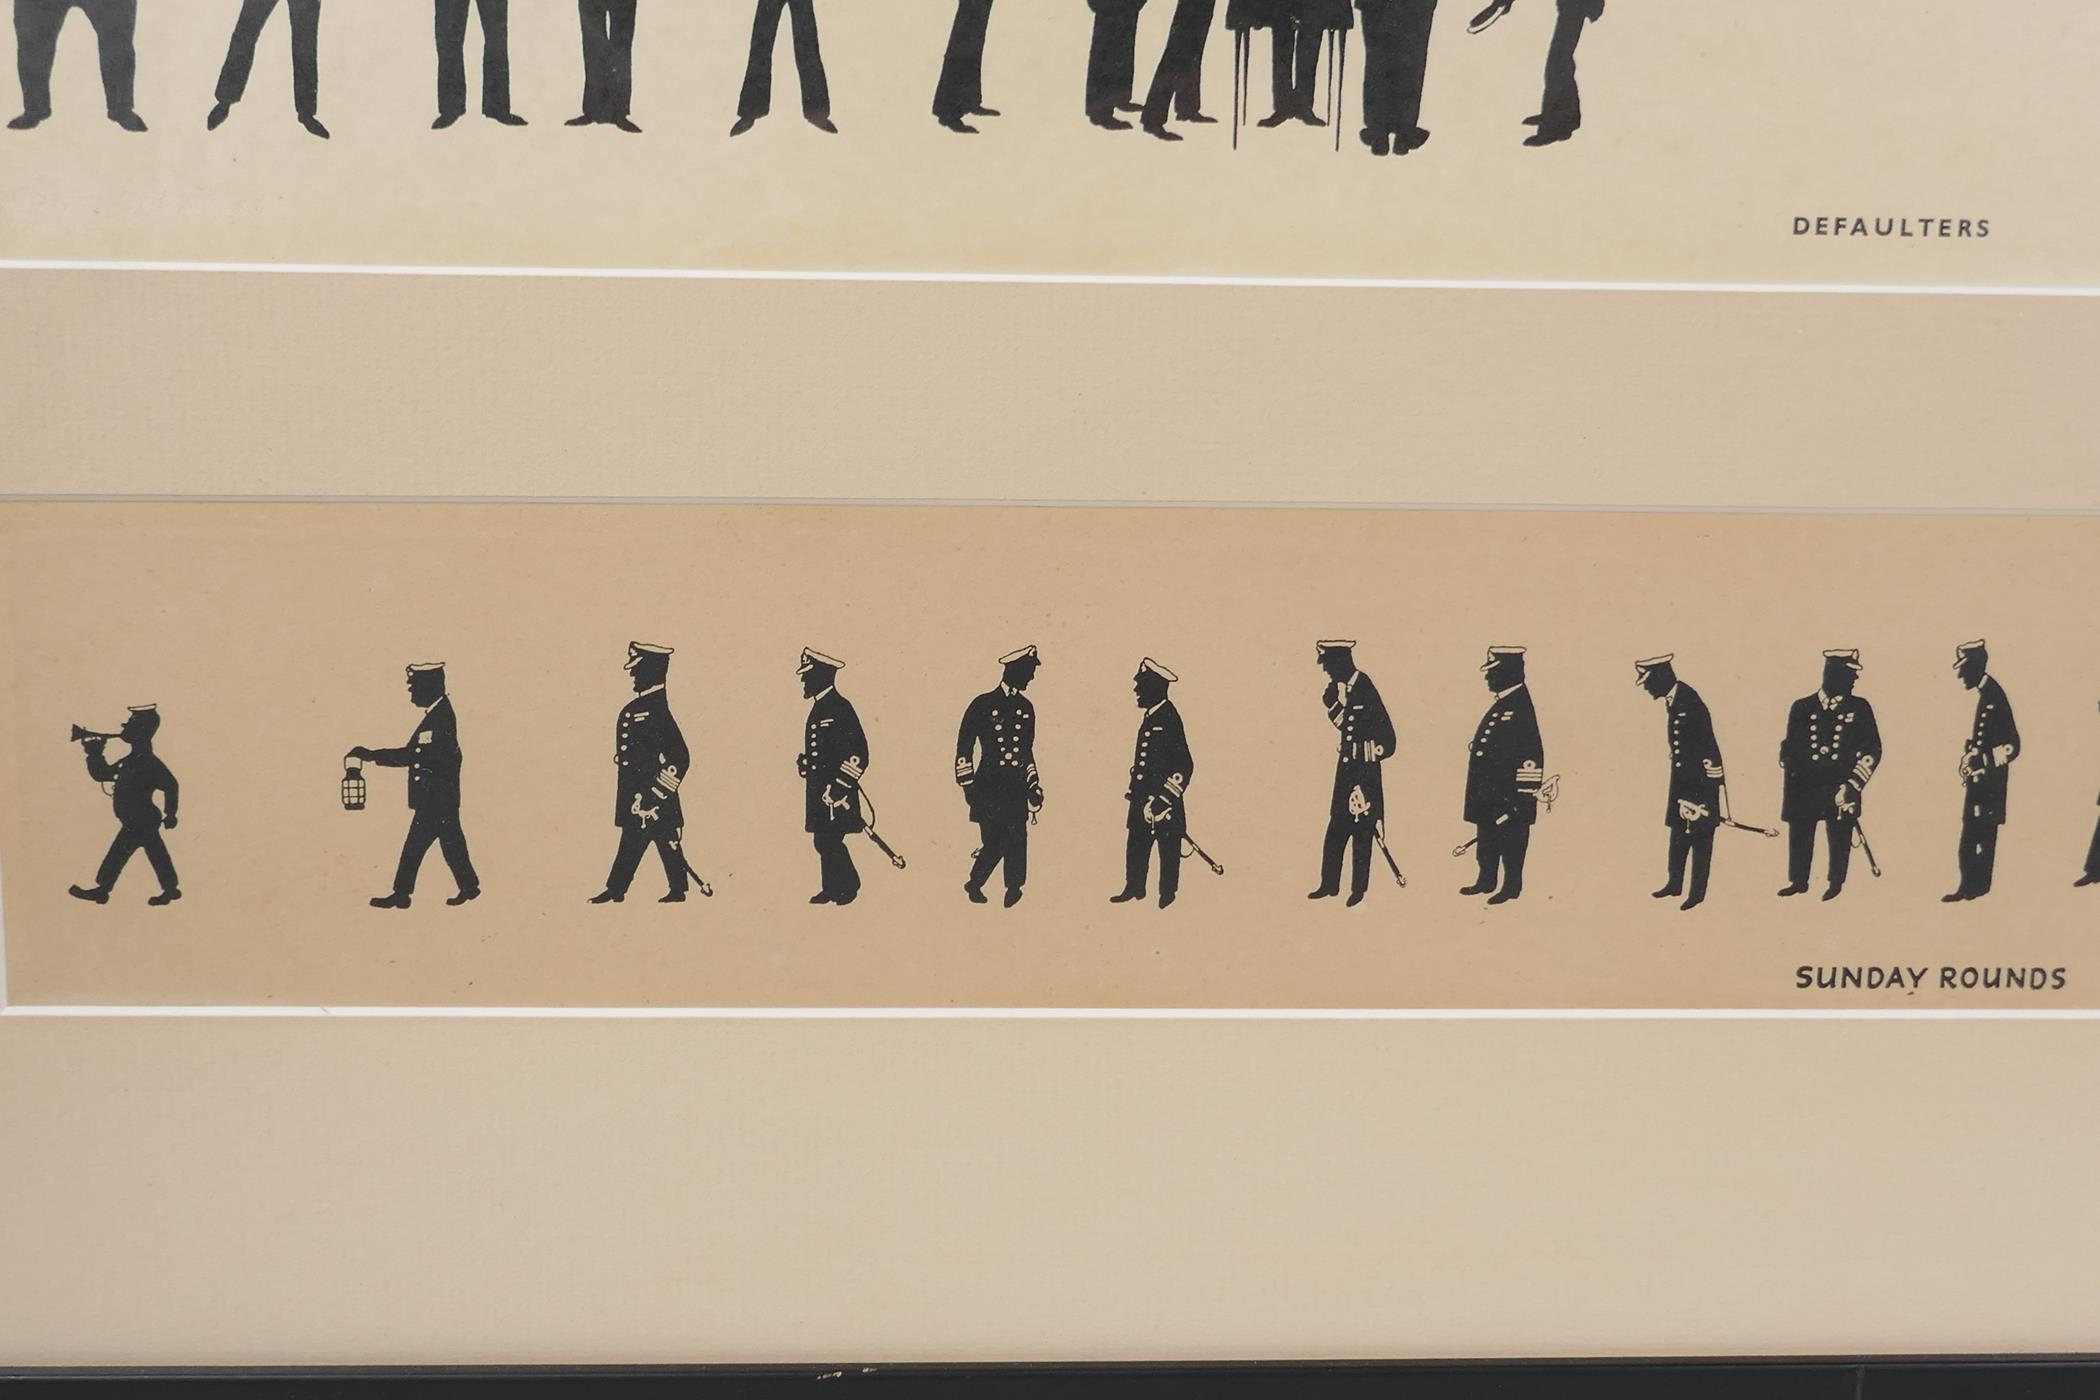 A.M. Hughes, three silhouette prints of naval life, Grog, Defaulters and Sunday Rounds, mounted in a - Image 7 of 9